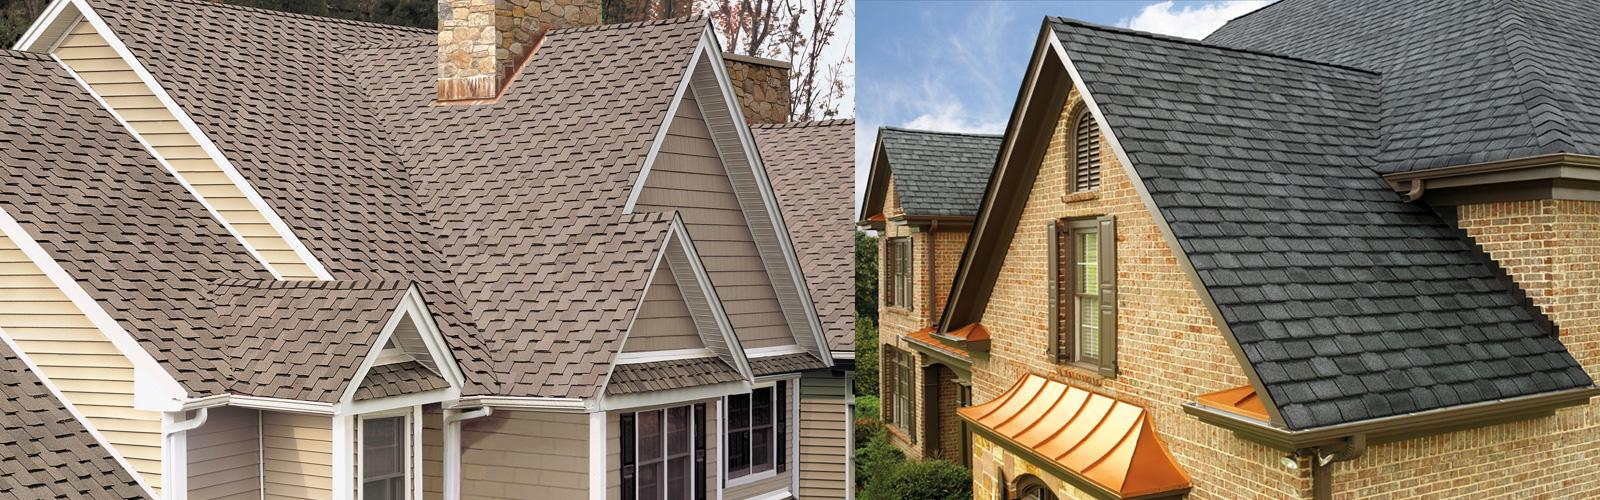 About Us Roofing Contractors South Jersey Roofing Nj